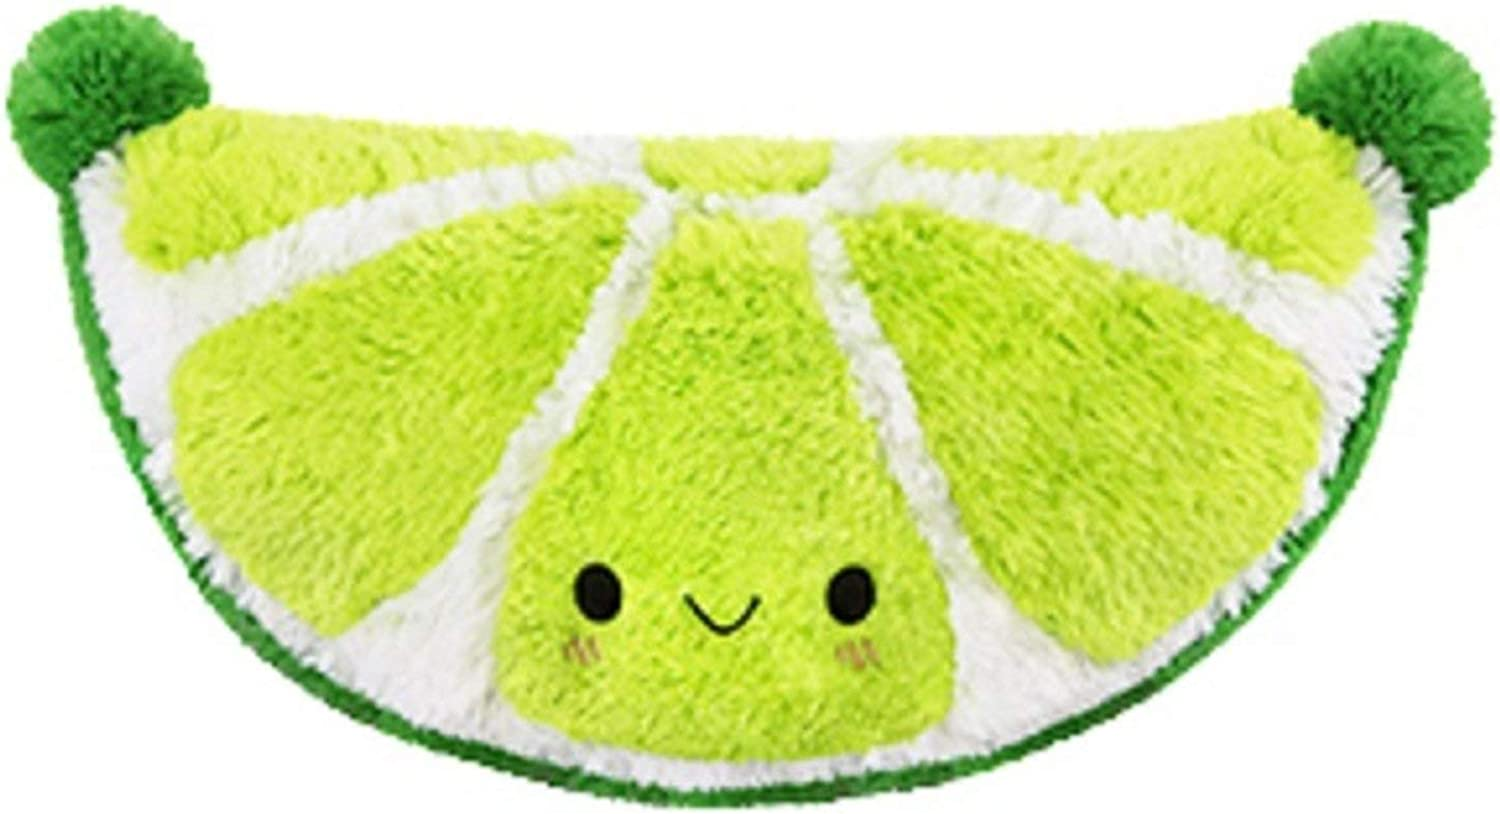 Lime Squishable 15 inch - Stuffed Animal by Squishable (105766)